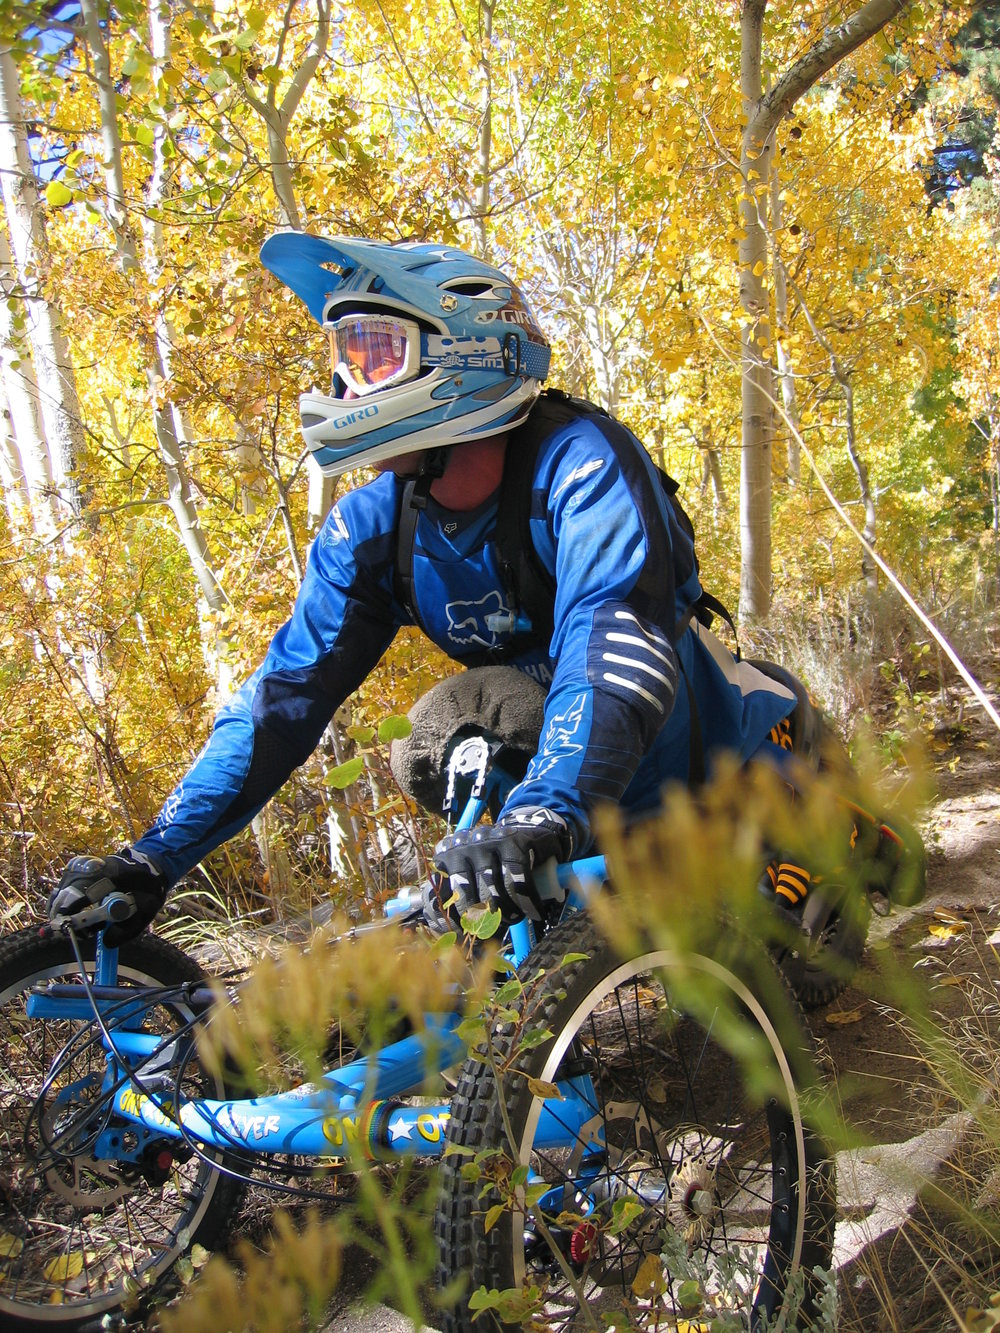 Who am i? Rigid bike with full face helmet? Bike #1